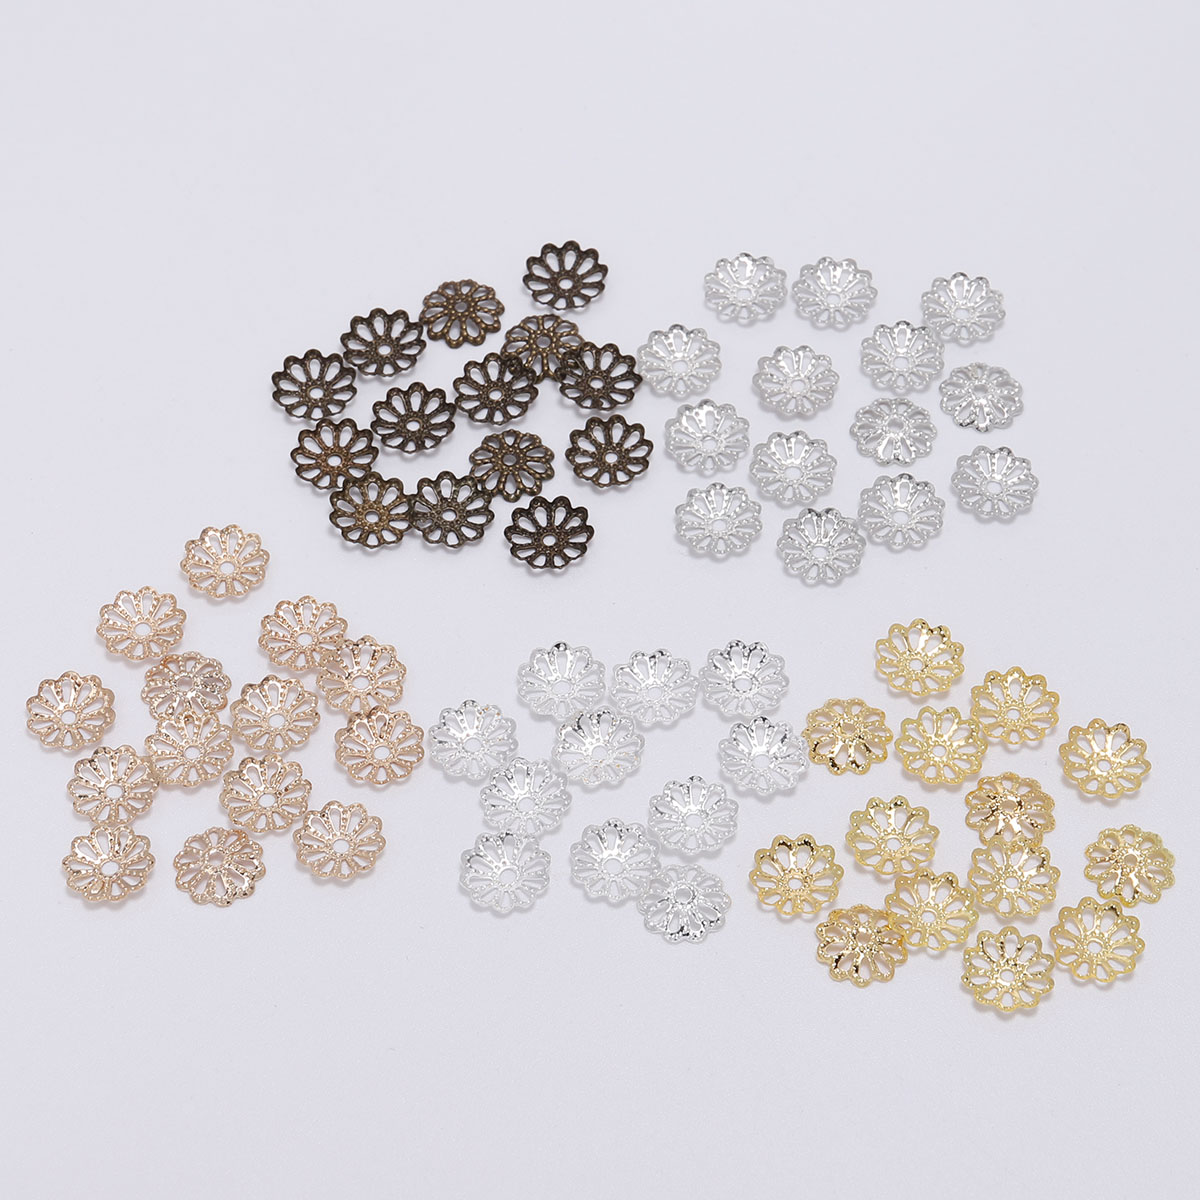 200 Pcs/Bag 7mm 9mm Flower Bead End Caps Gold Silver Bead Caps For Jewelry Making DIY Bracelet Earrings Accessories Findings